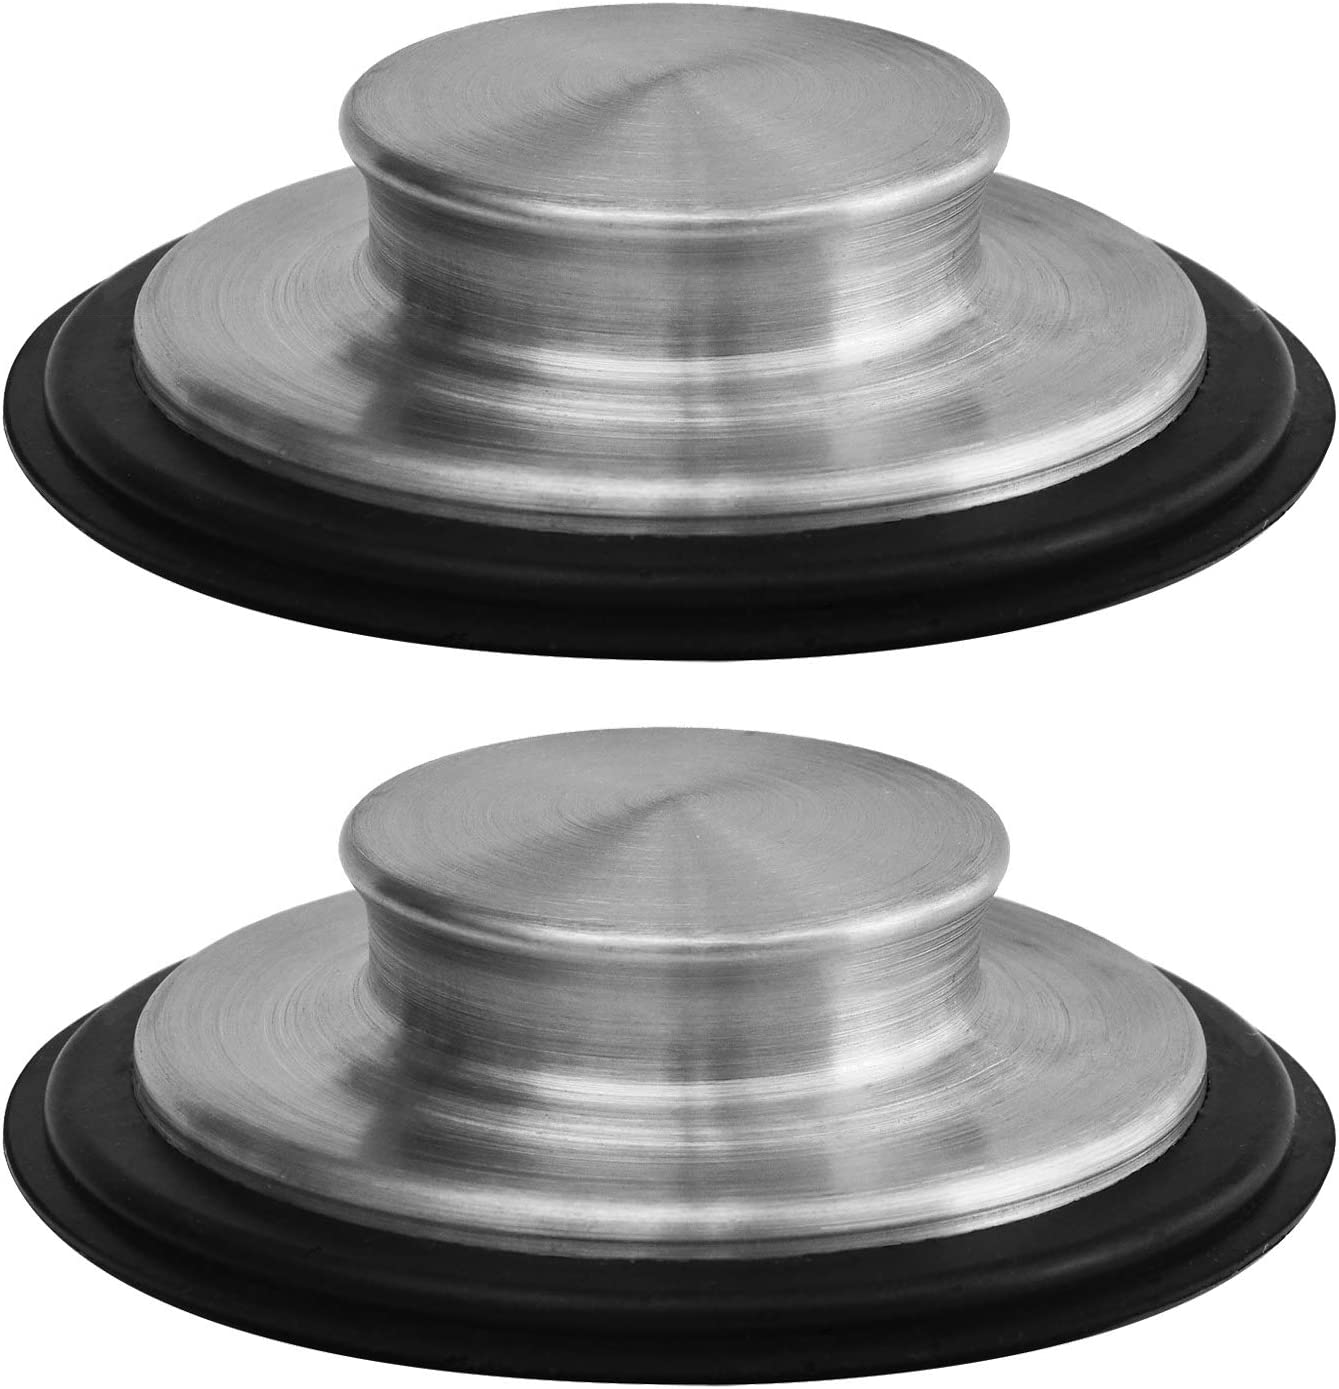 2 PACK - 3 3/8 inch (8.57Cm) - Kitchen Sink Stopper Stainless Steel Garbage Disposal Plug Fits Standard Kitchen Drain size of 3 ½ Inch (3.5 Inch) Diameter